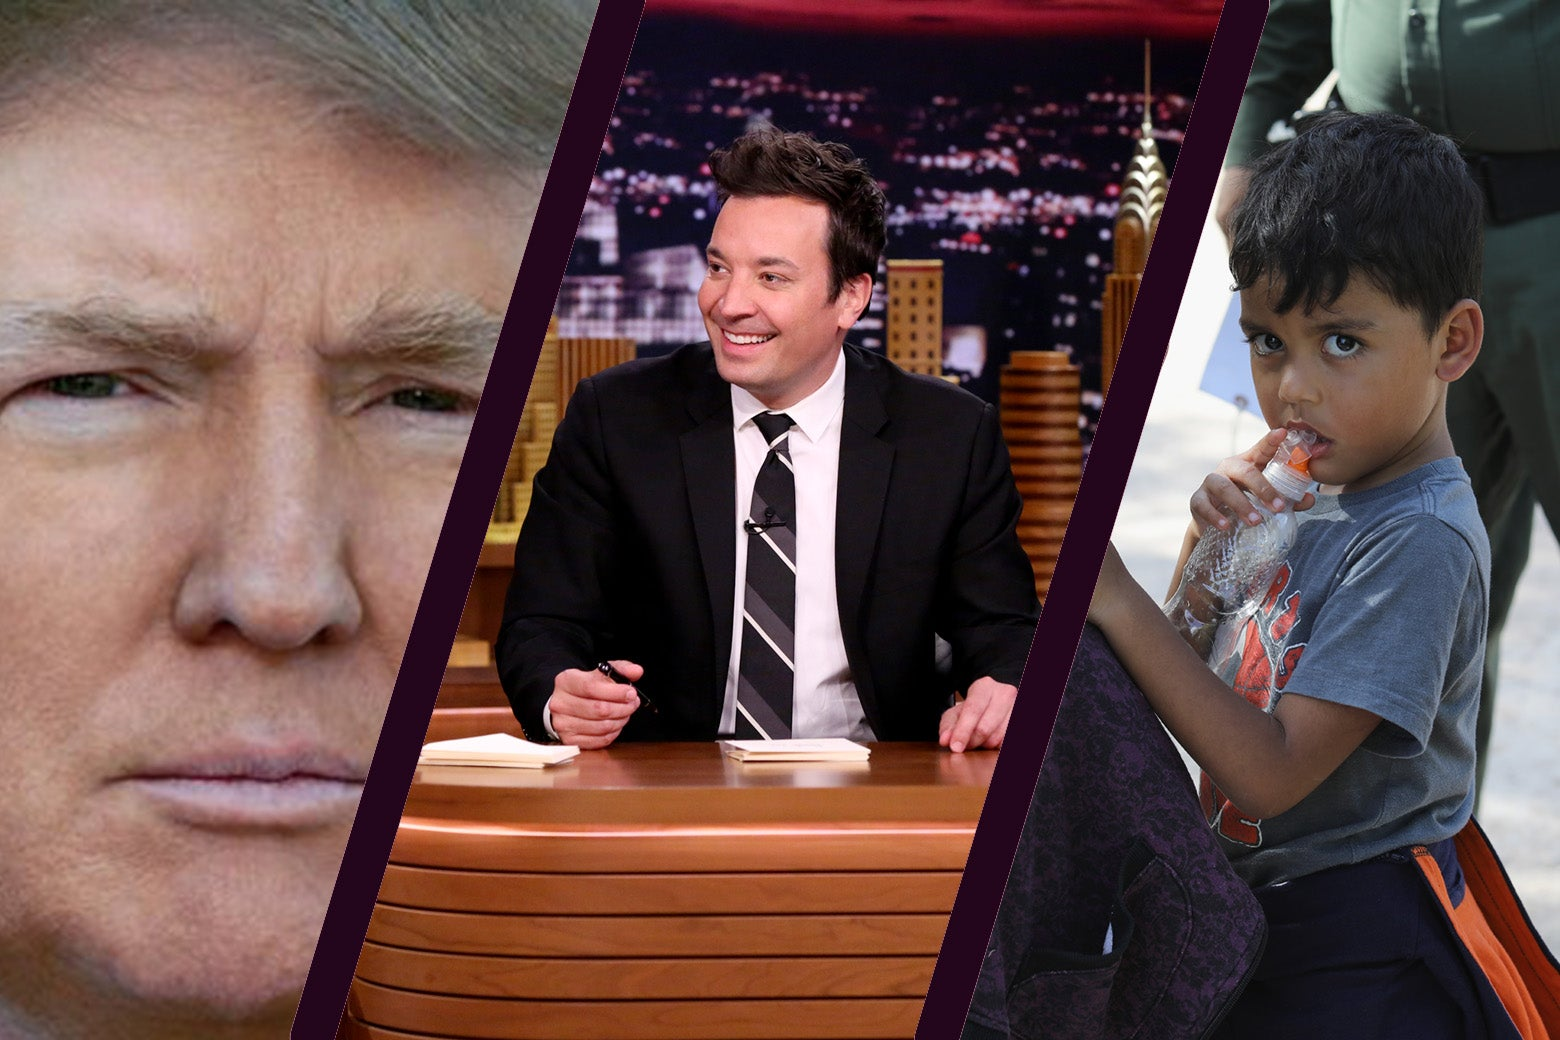 A montage showing Donald Trump's Twitter portrait, Jimmy Fallon at his desk, and an unidentified migrant child being taken into custody by Customs and Border Patrol in McAllen, Texas.